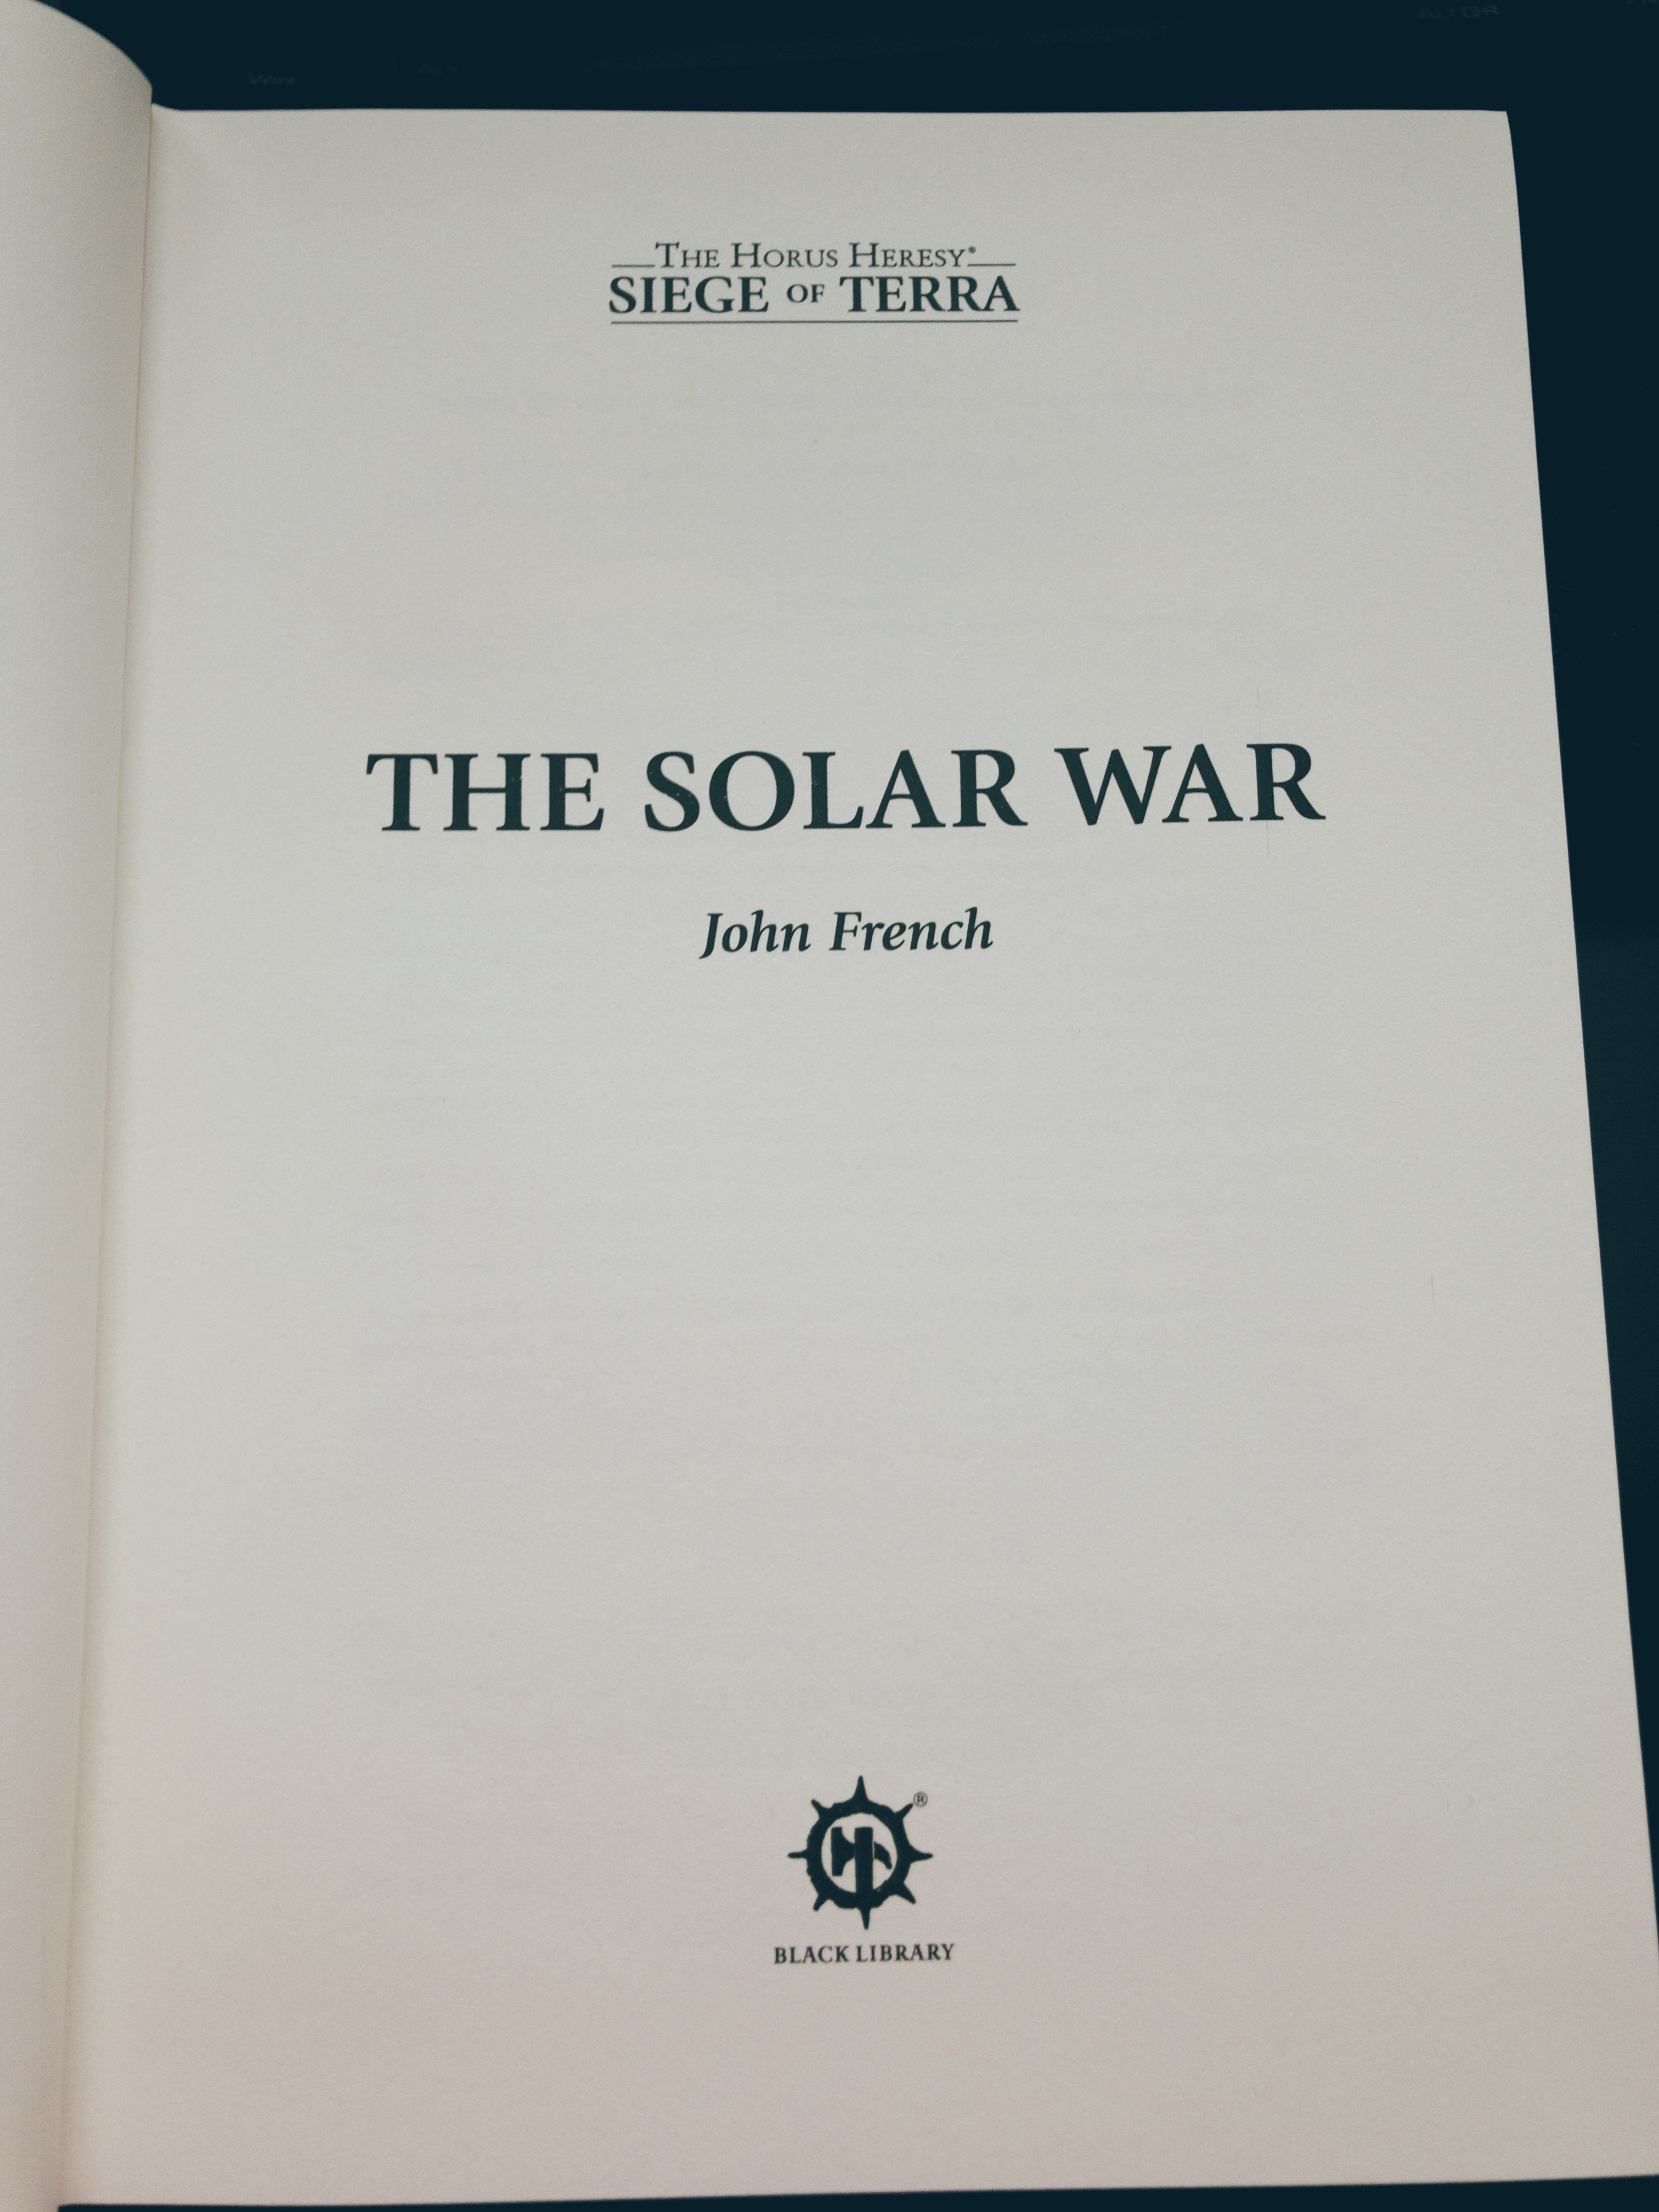 The Solar War internal title page